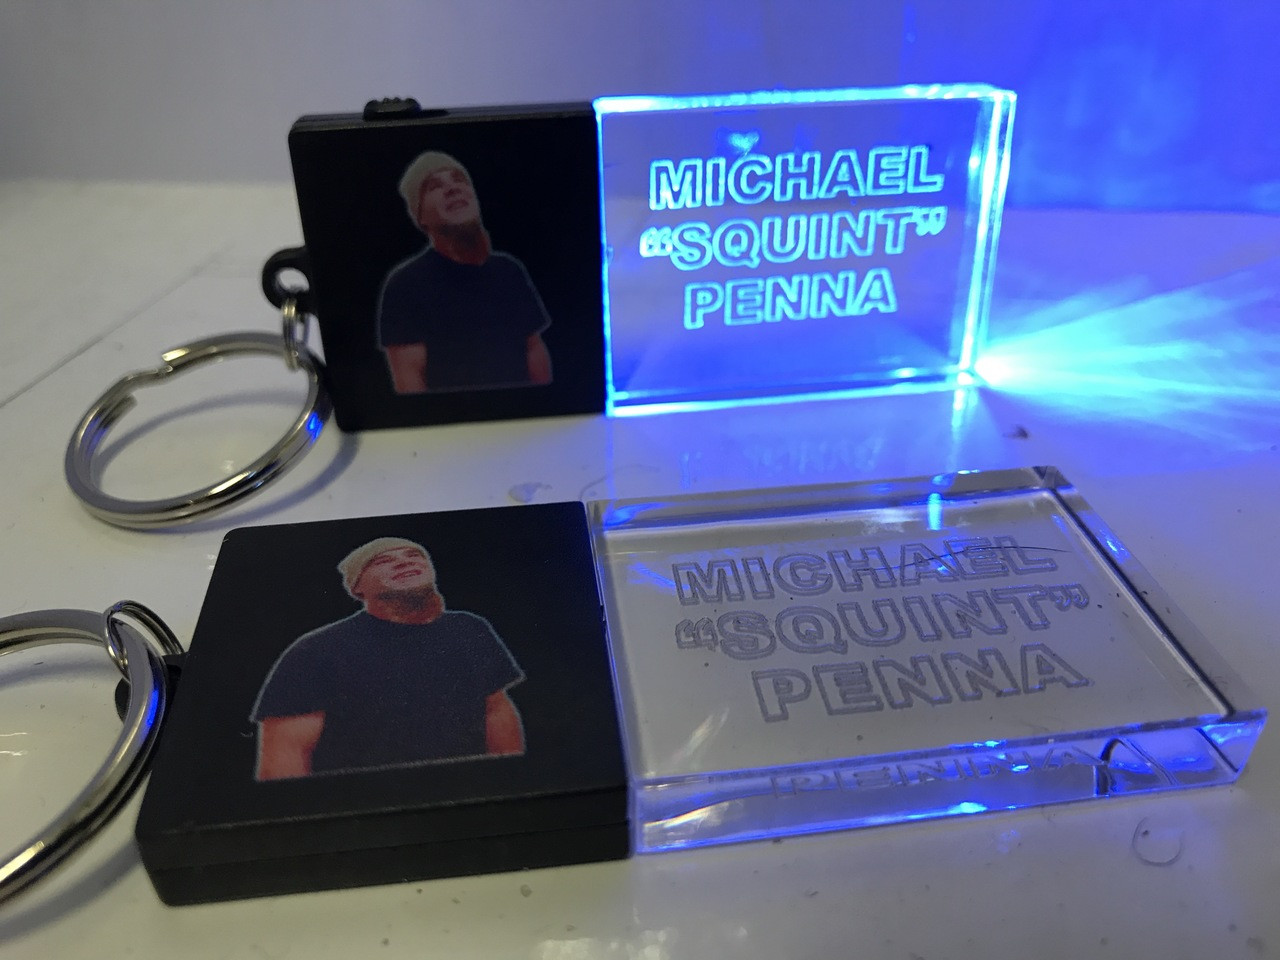 LED,Keychain,Key,chain,LED keychain, custom, BEAM, dual, print,engraved, logo,text, laser engraved,personalized,promo,merch,fundraiser,nightclub,fund raiser,Rest in Peace, Squint,Michael Pena